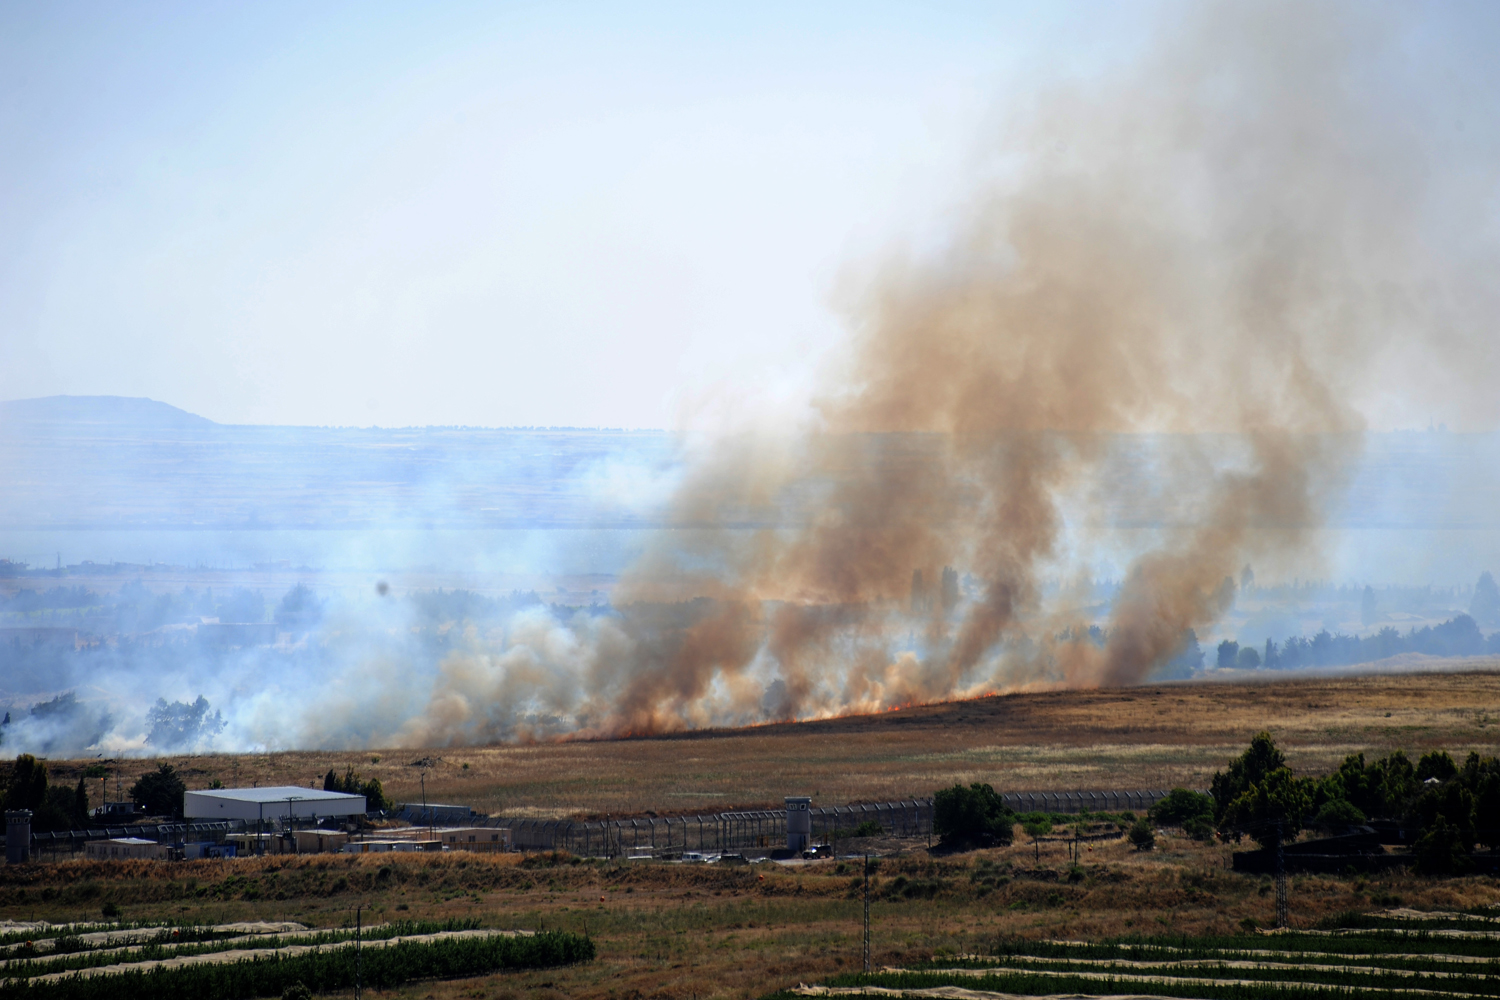 June 6, 2013. Smoke rises from the Israeli occupied Golan Heights near the Quneitra border crossing.